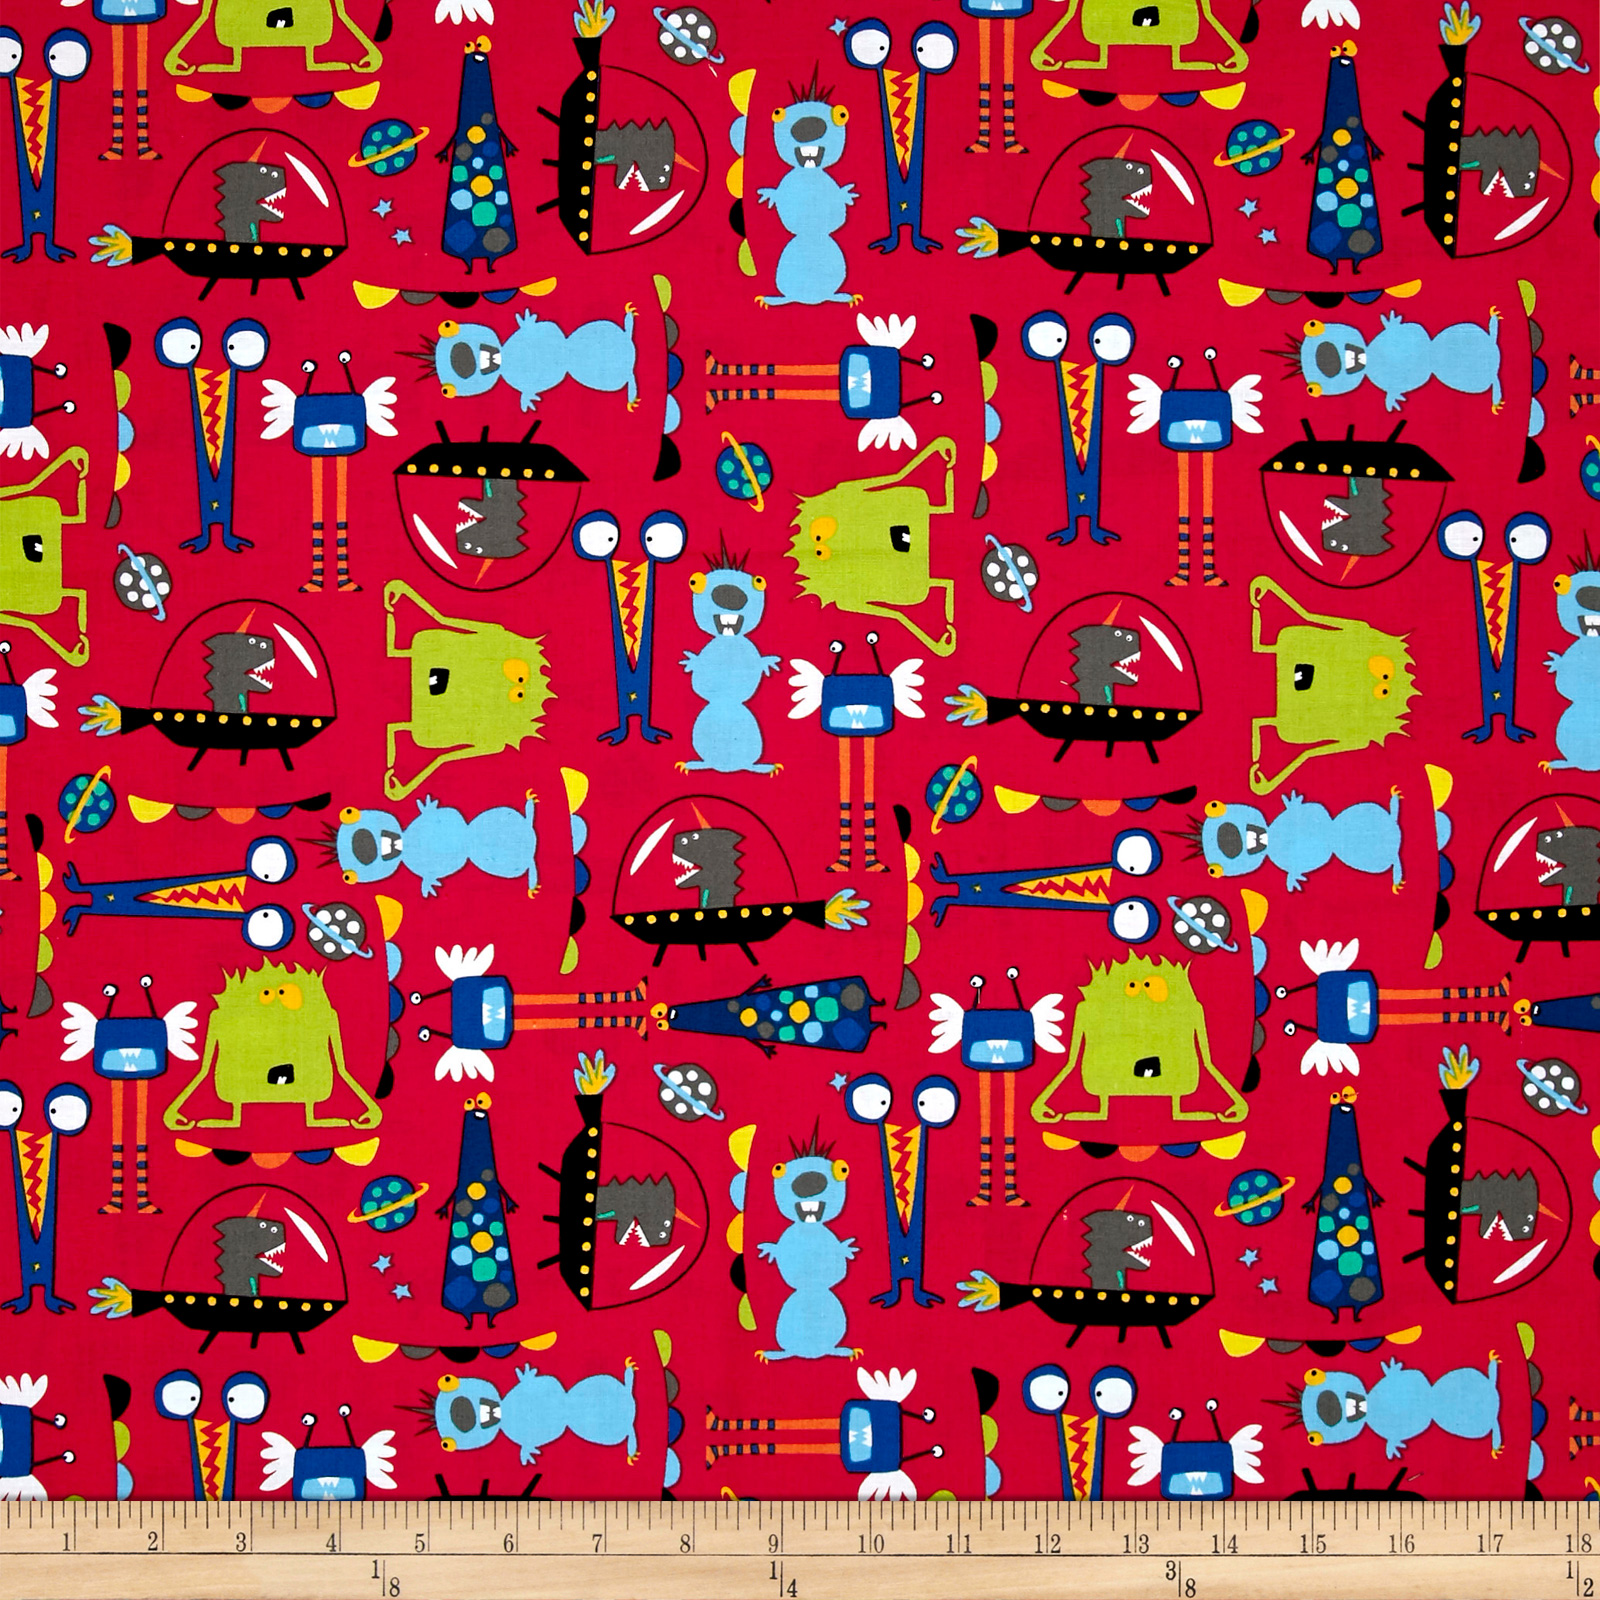 Aliens_In_Space_Aliens_Red_Fabric